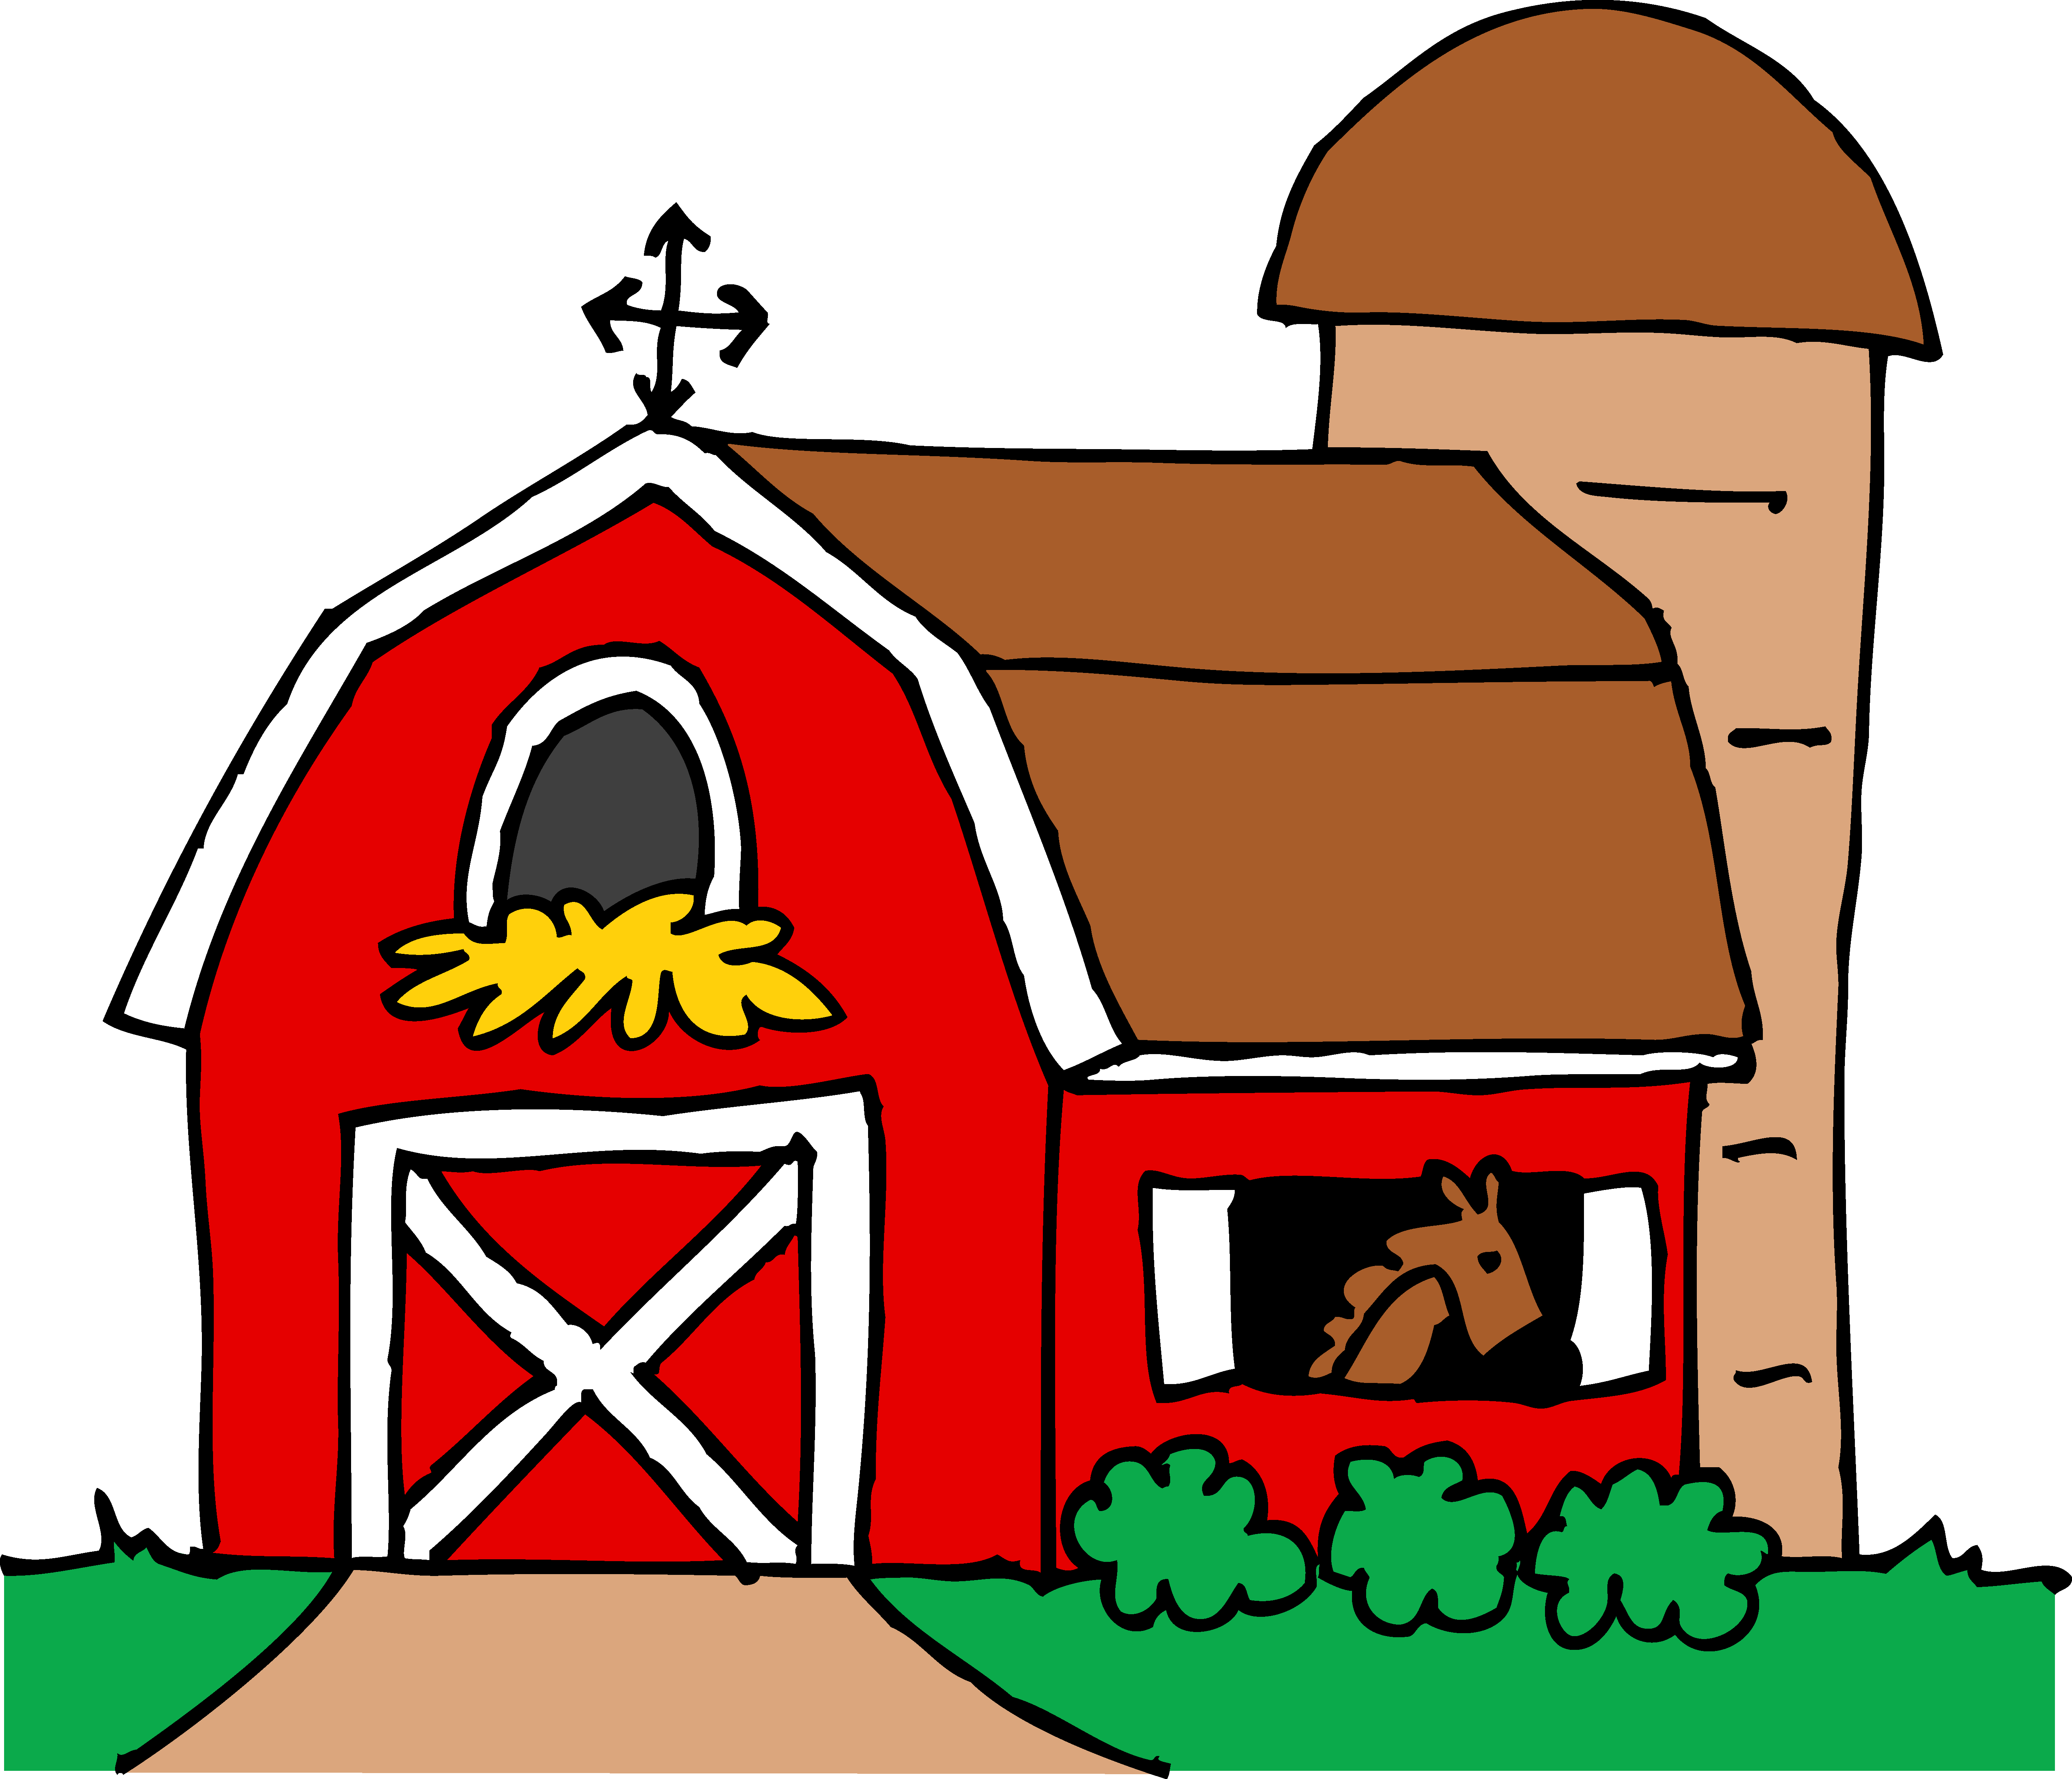 5583x4793 Barn And Silo Clipart Amp Barn And Silo Clip Art Images